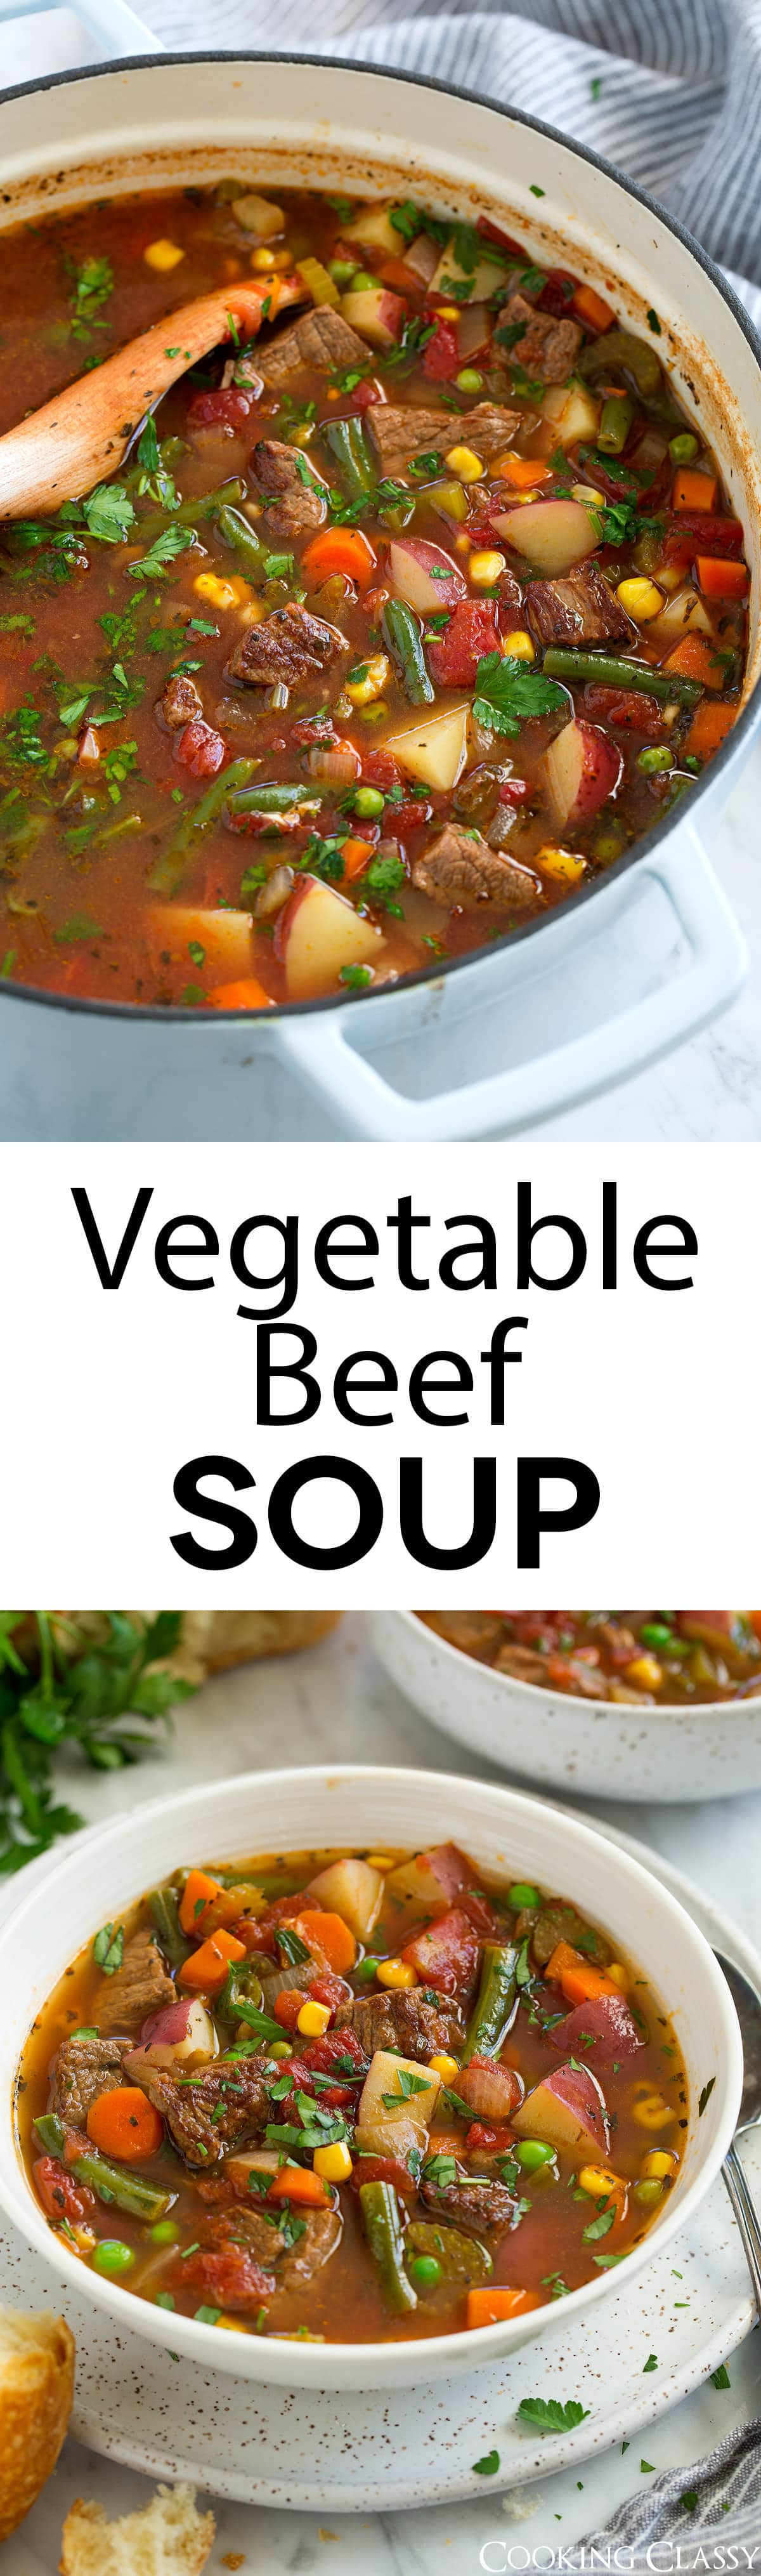 Vegetable Beef Soup - This soup is the perfect way to use up all those summer veggies and those tender chunks of beef add such a delicious flavor. A hearty soup that's sure to satisfy, and you'll love the left overs! #soup #vegetablesoup #beefsoup #comfortfood #recipe